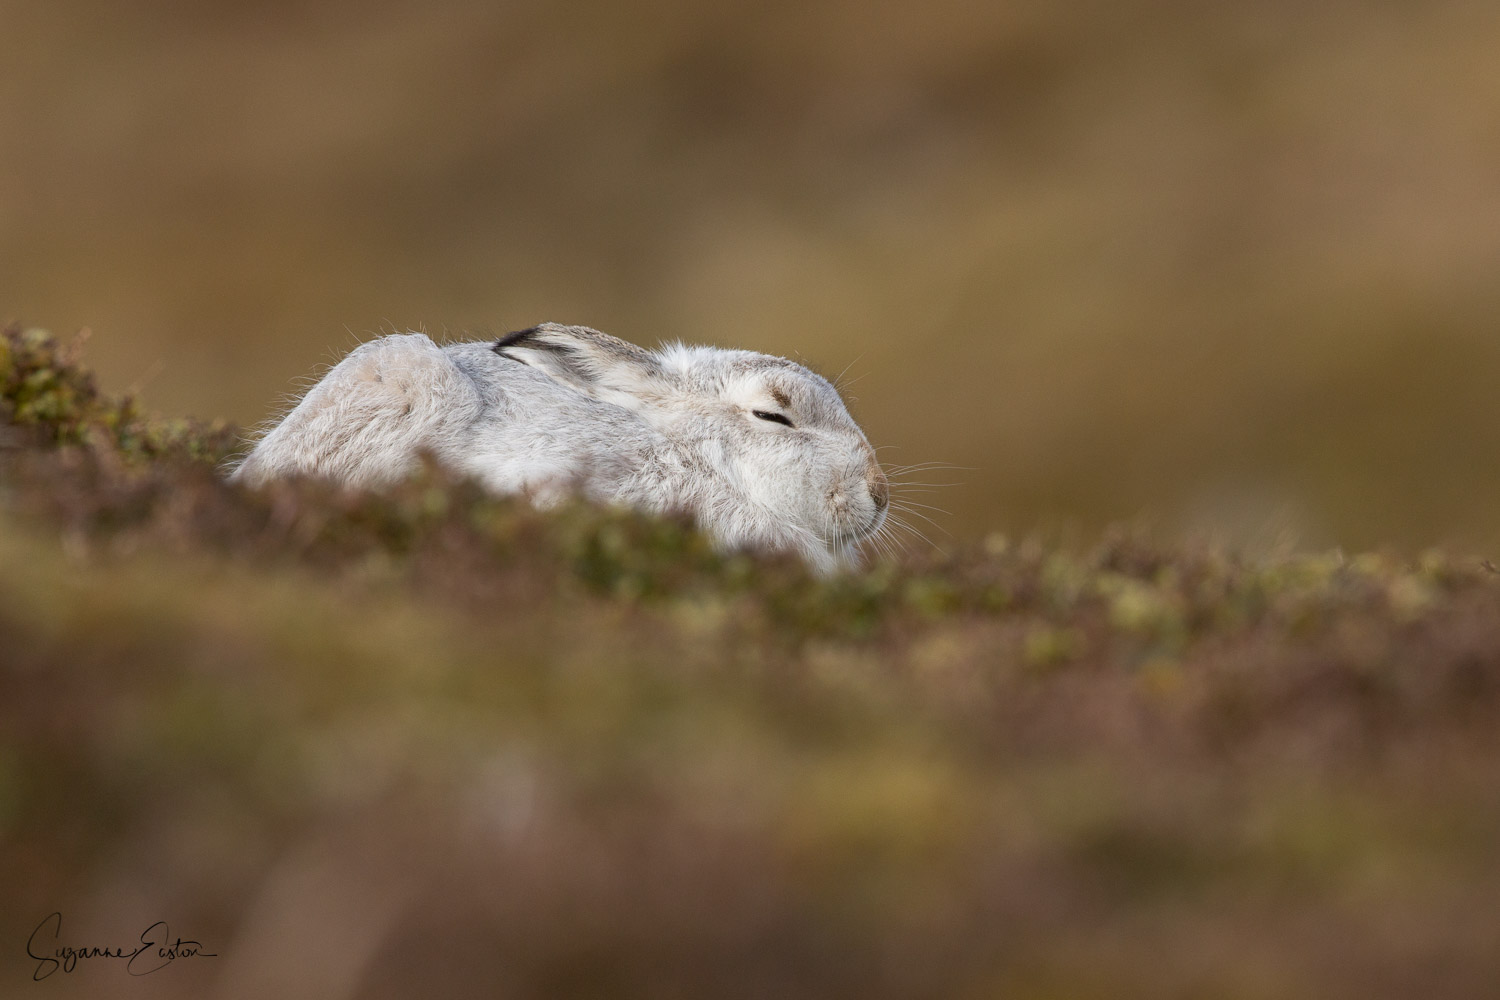 Mountain Hare in new form